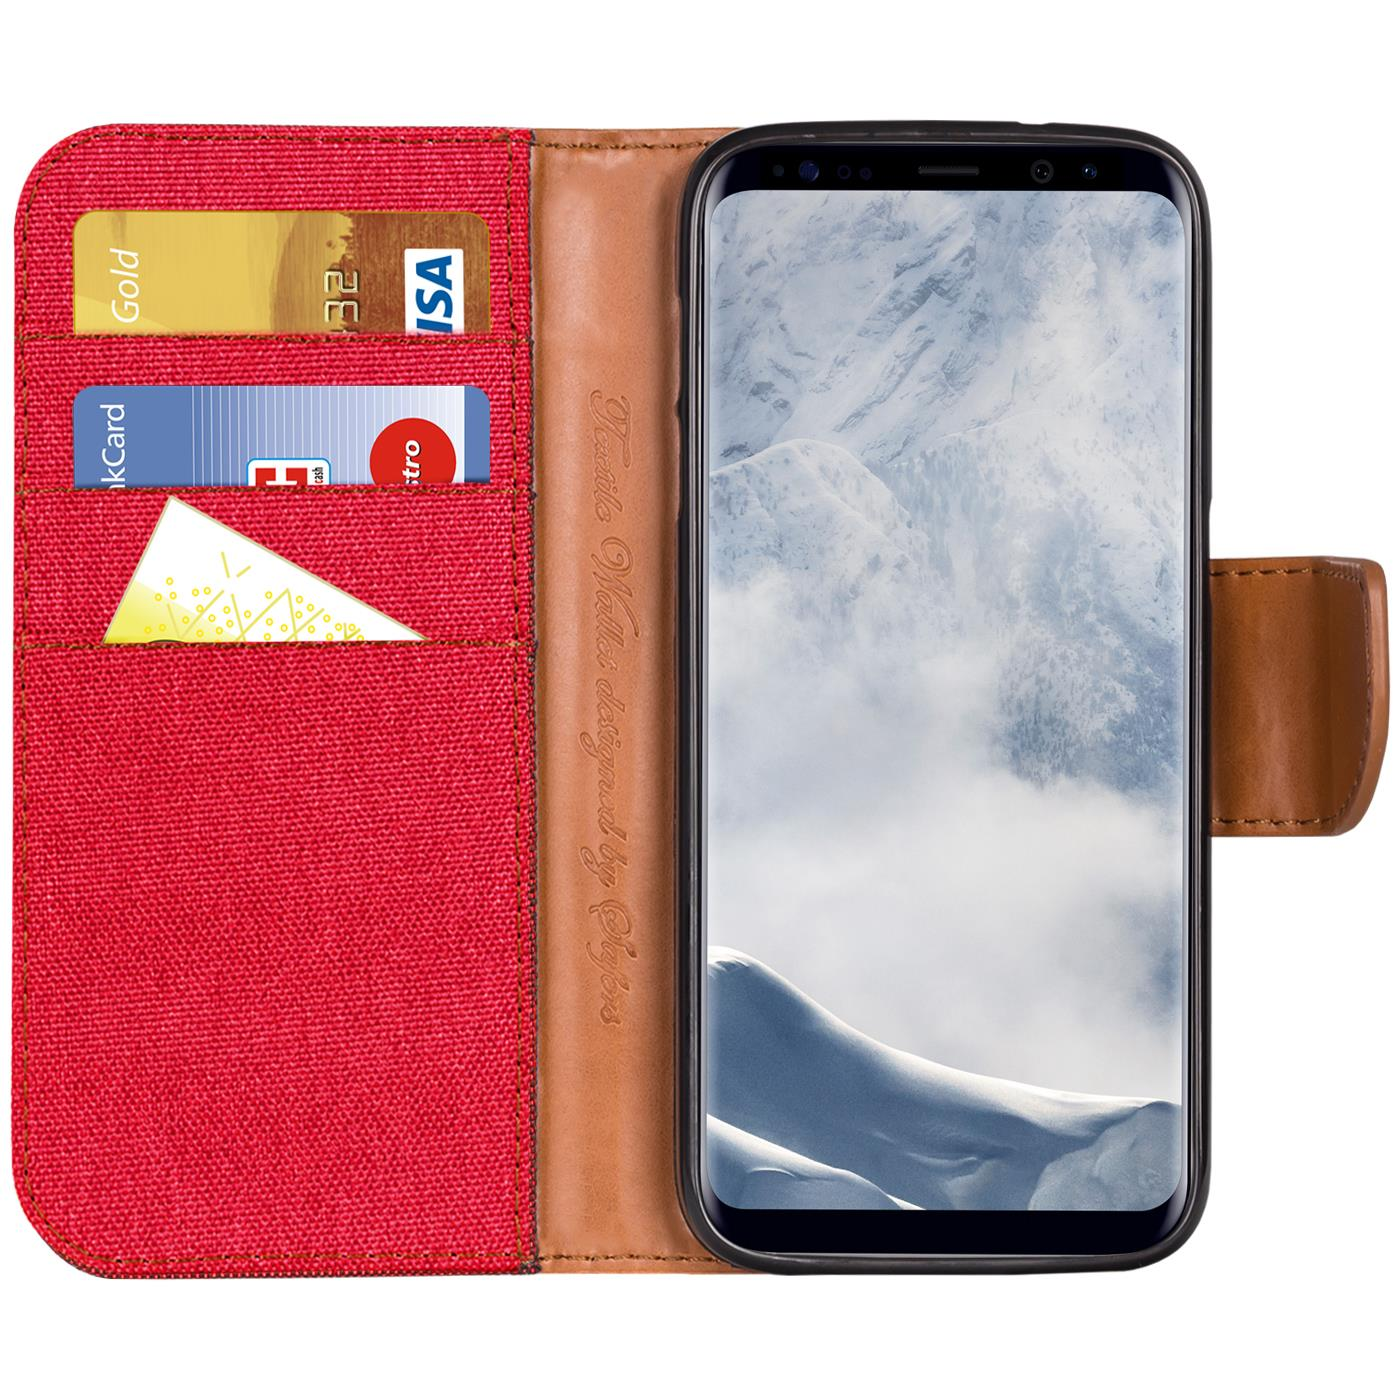 Samsung-Galaxy-S8-Plus-Phone-PU-Leather-Magnetic-Flip-Case-Wallet-Denim-Cover thumbnail 16